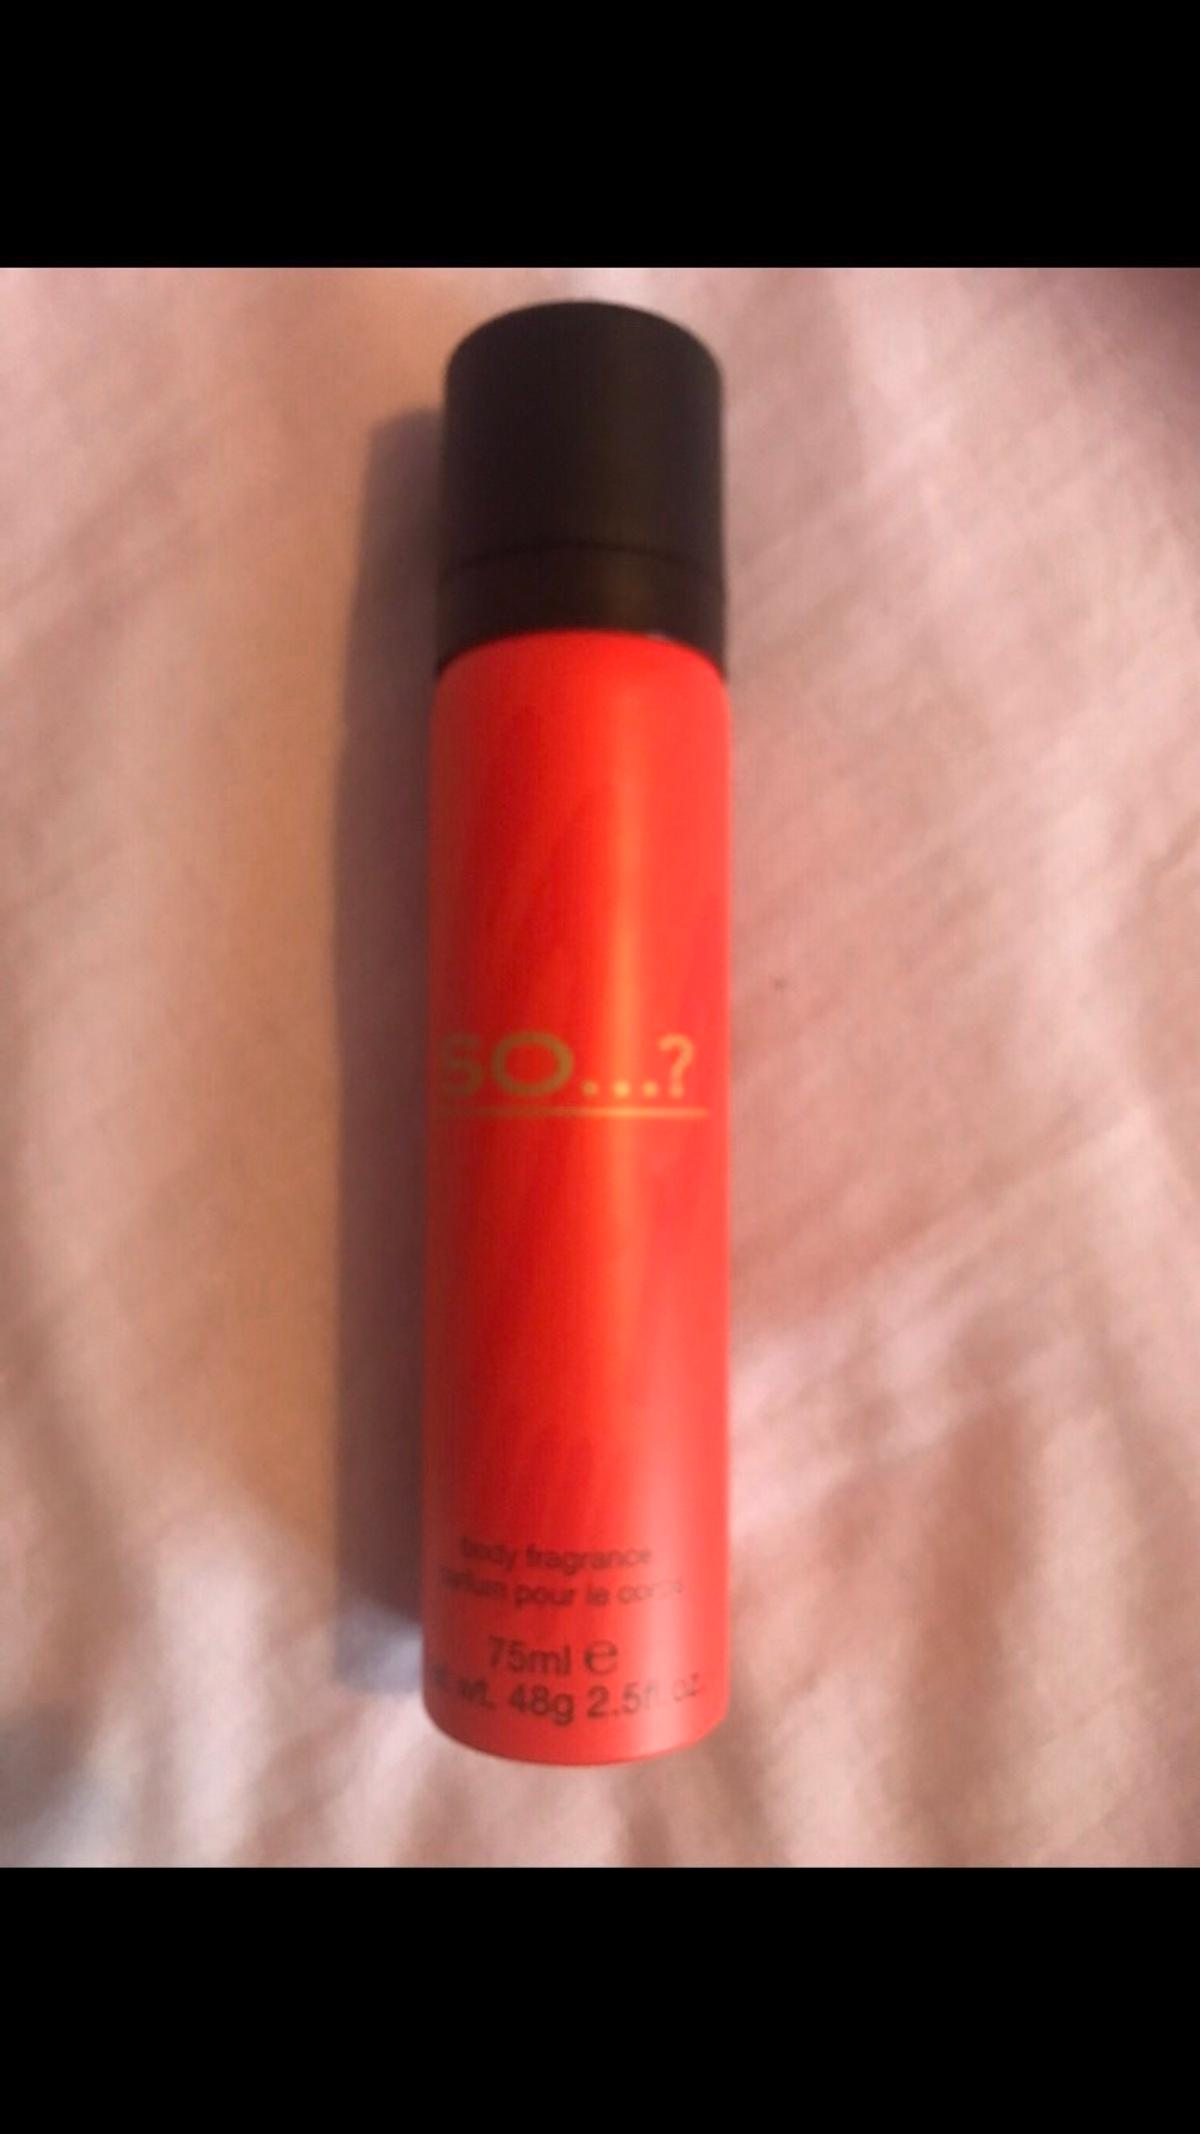 Brand new so body spray never used  Collection only I can't deliver or post